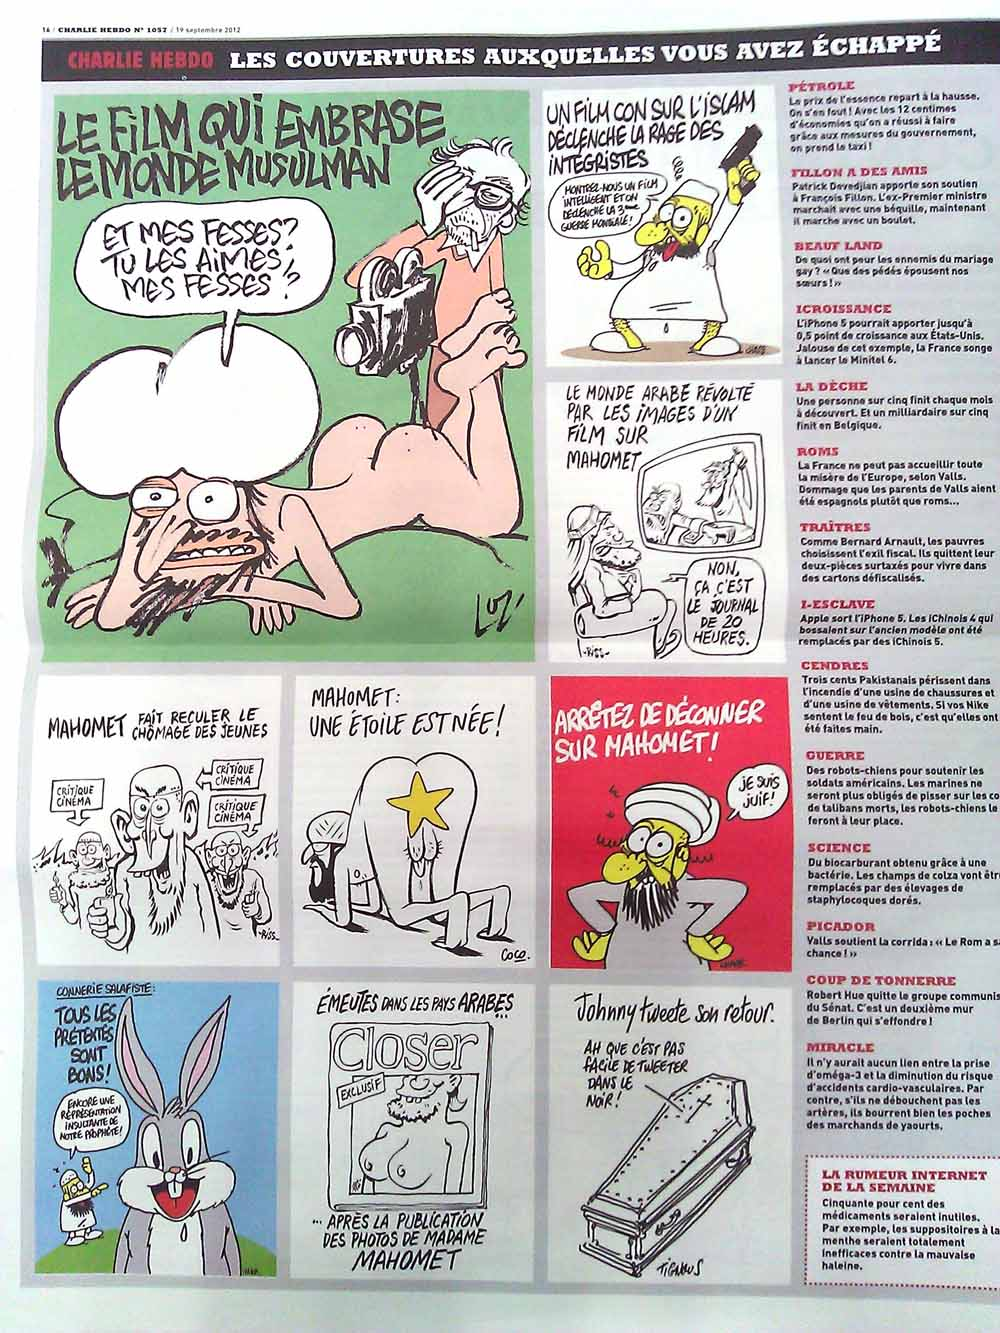 A few of Charlie Hebdo's rather controversial cartoons